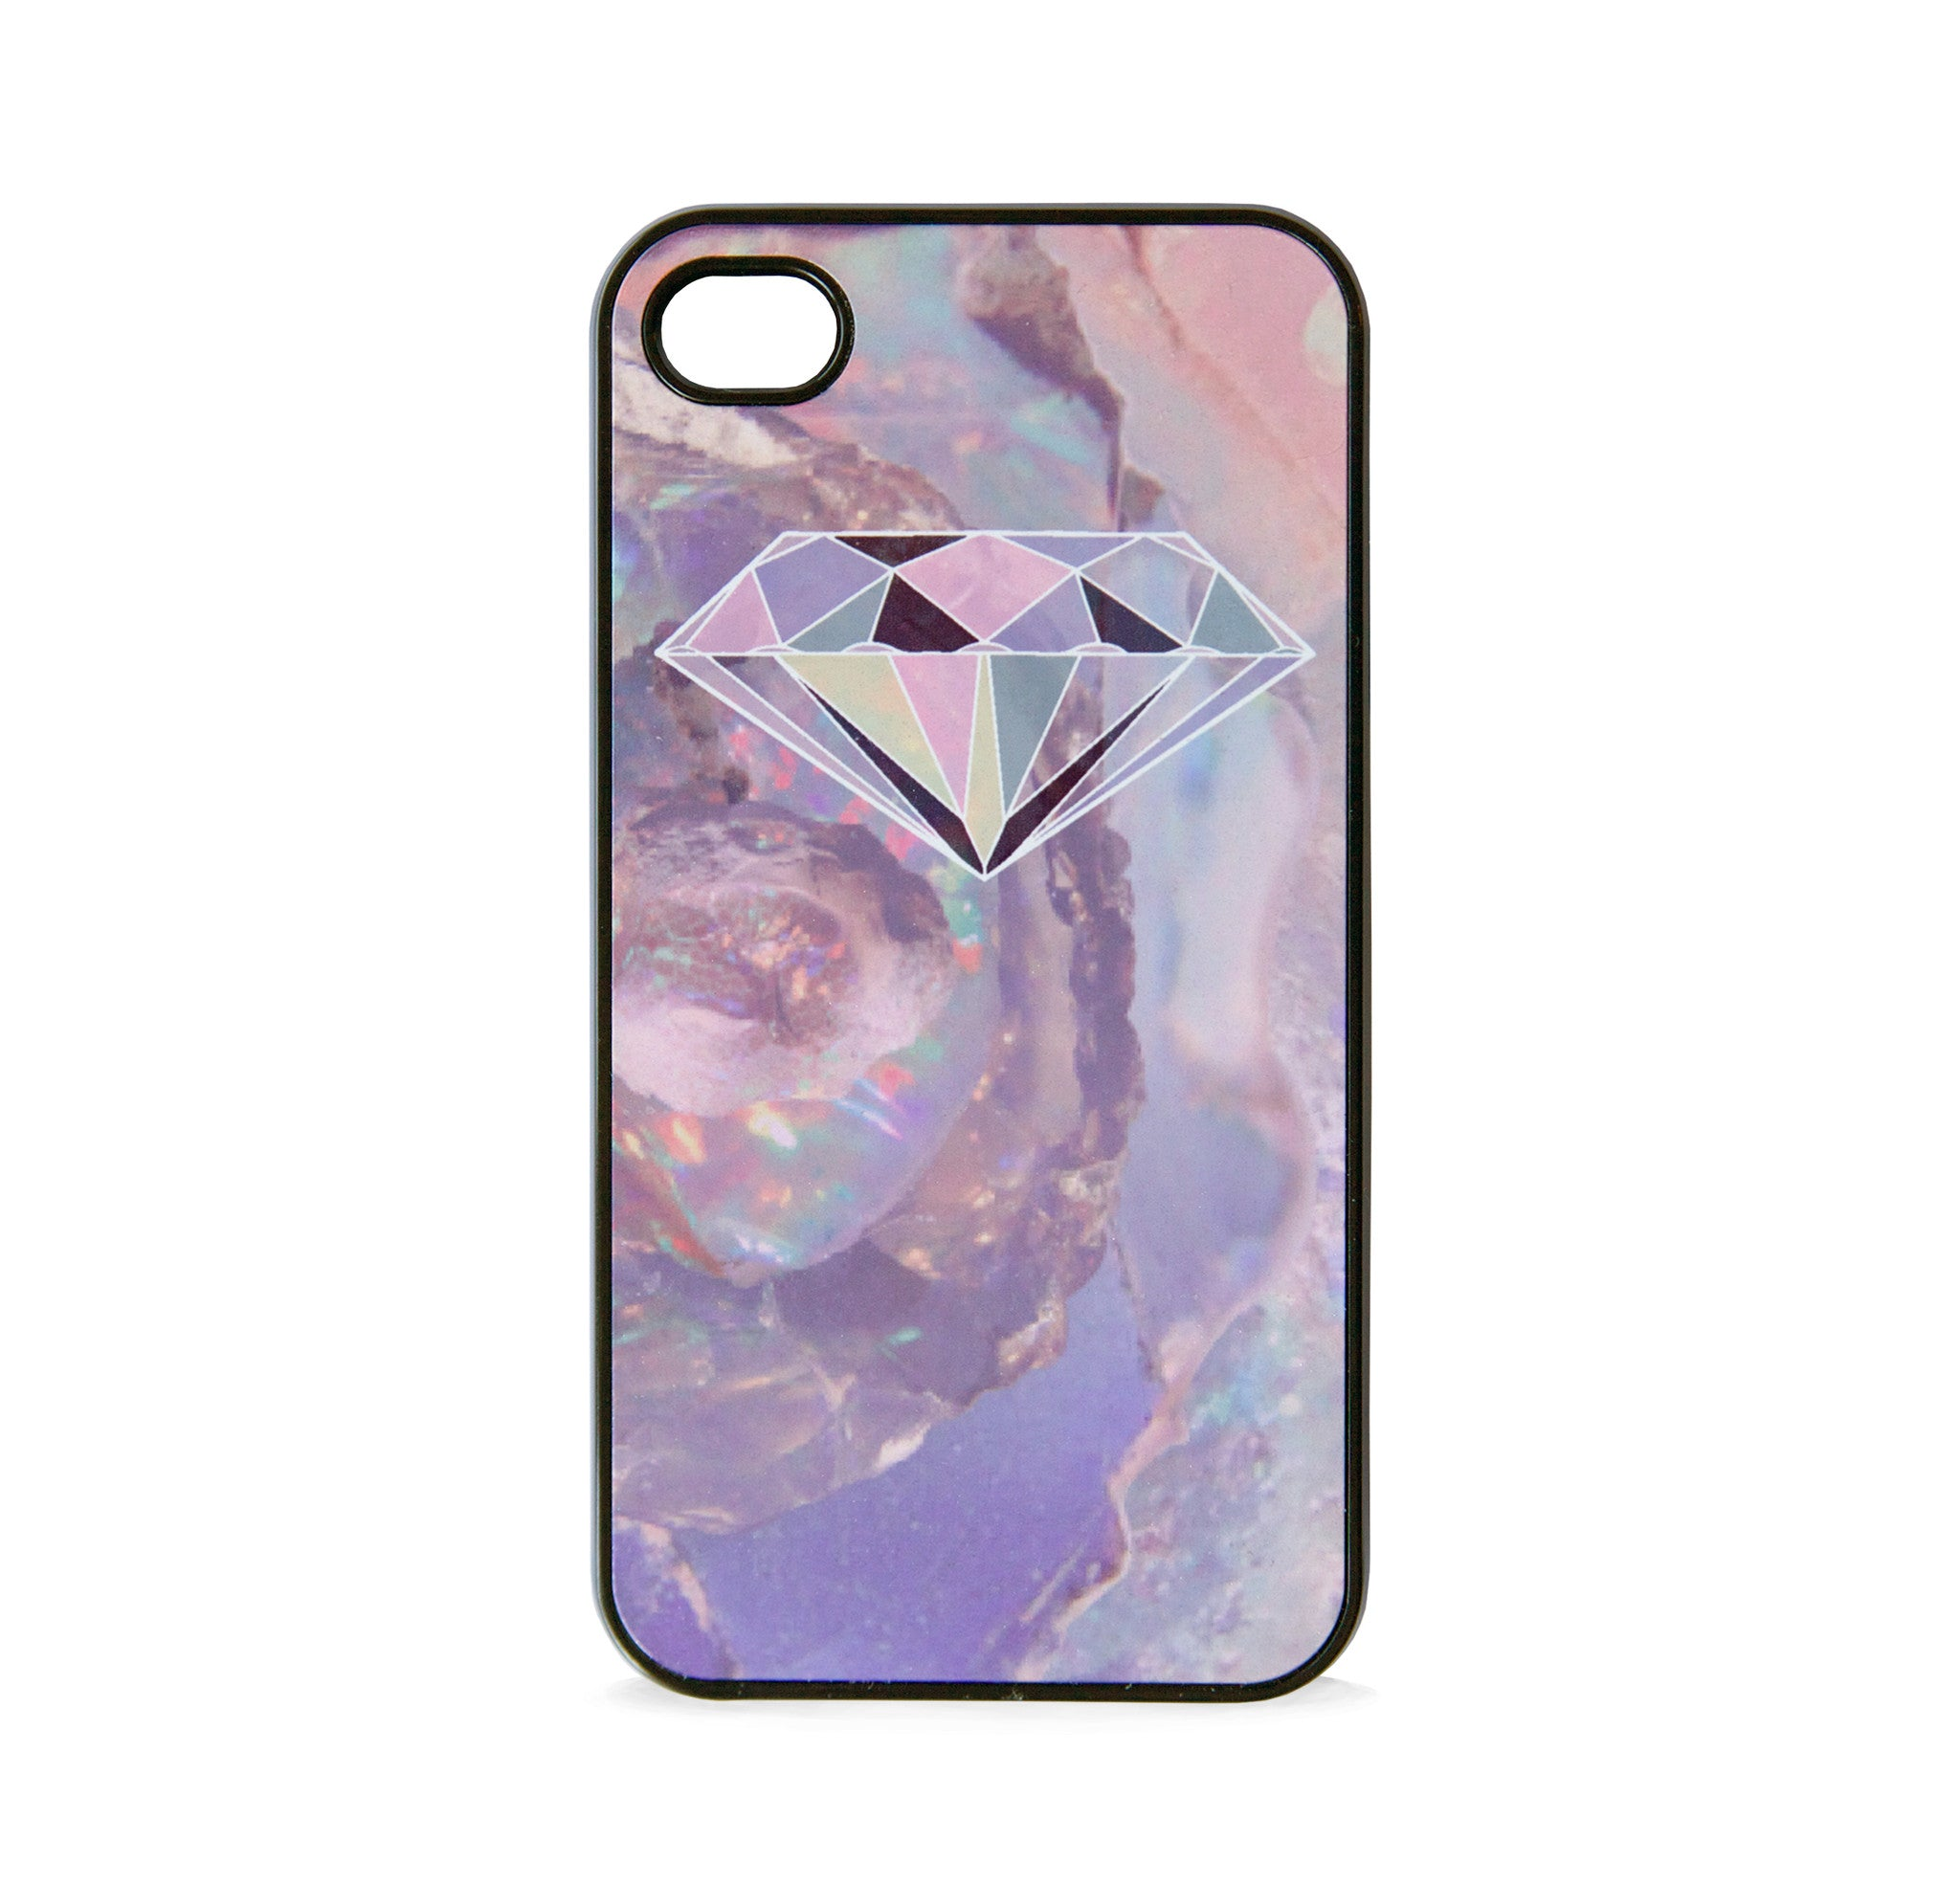 DIAMOND ON JEWEL FOR IPHONE 4/4S